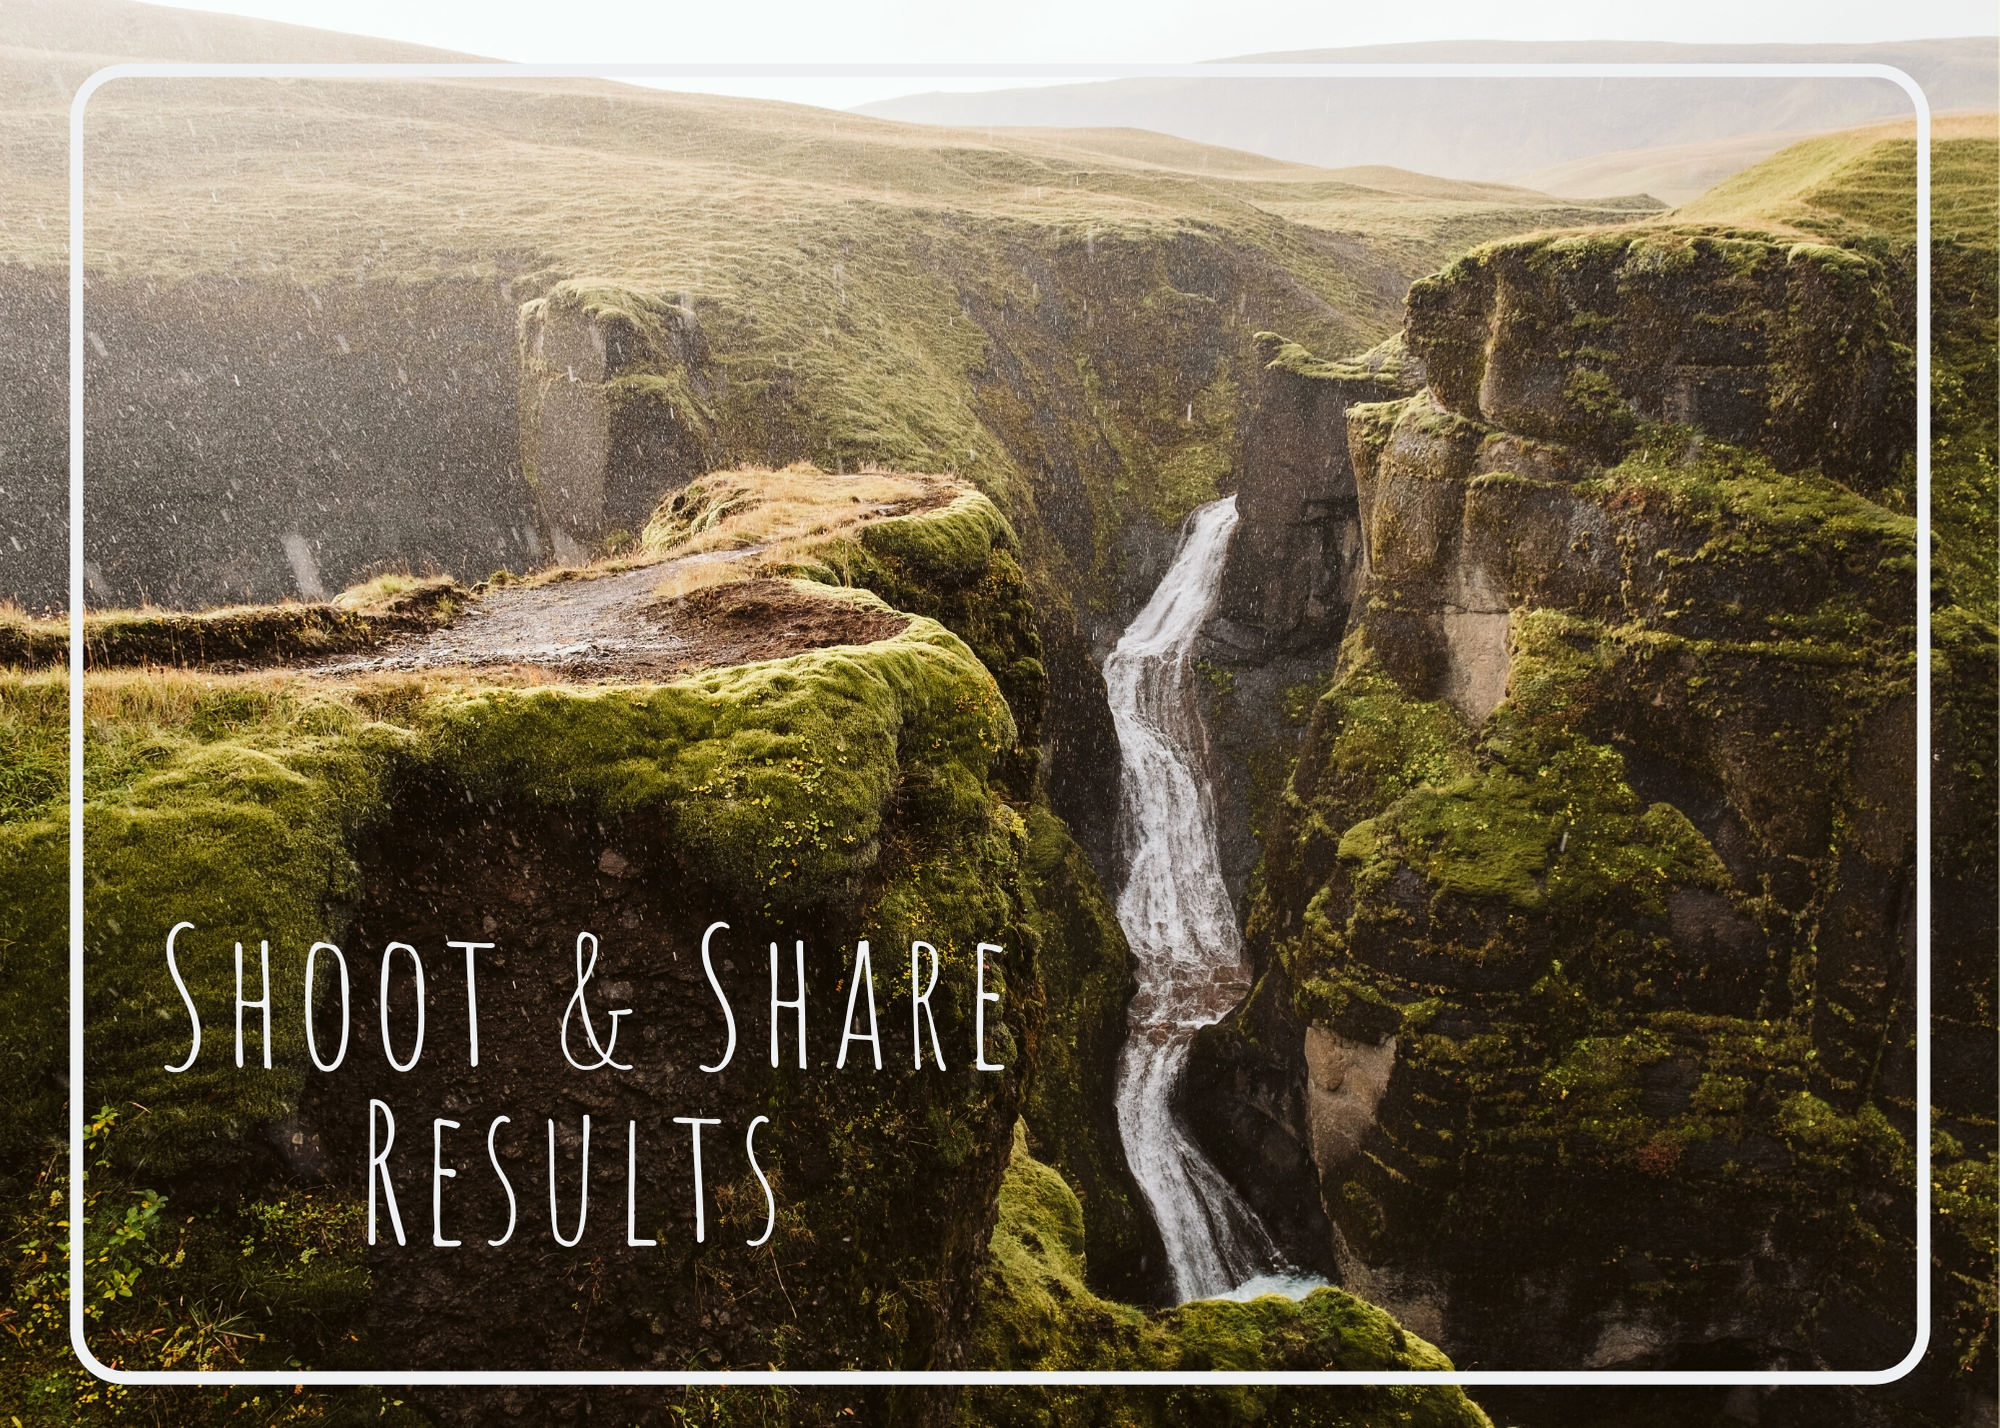 My Best Photos – The Shoot & Share Photo Contest